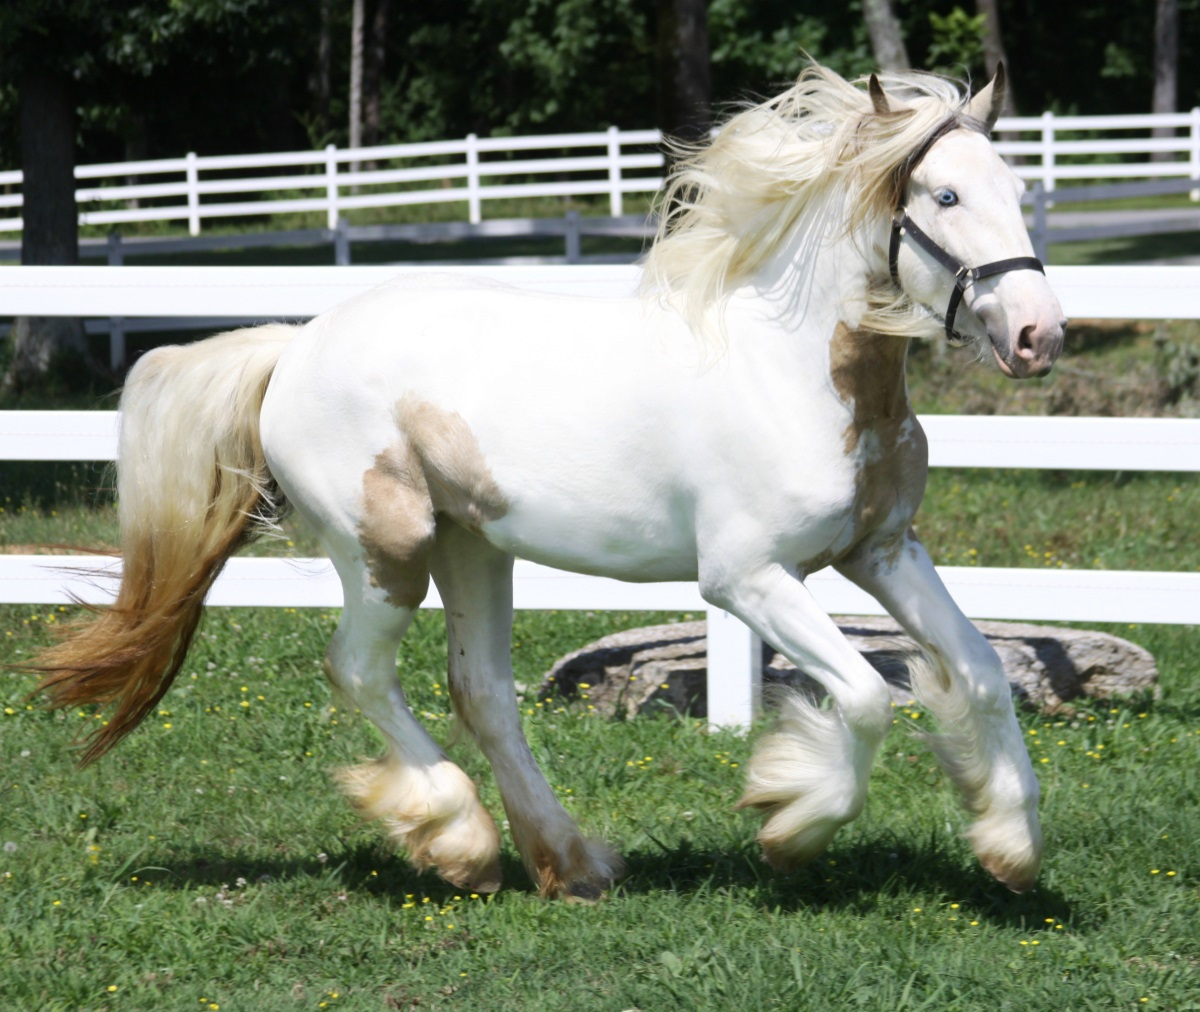 Chloe of Lexlin, 2009 Gypsy Vanner Horse mare